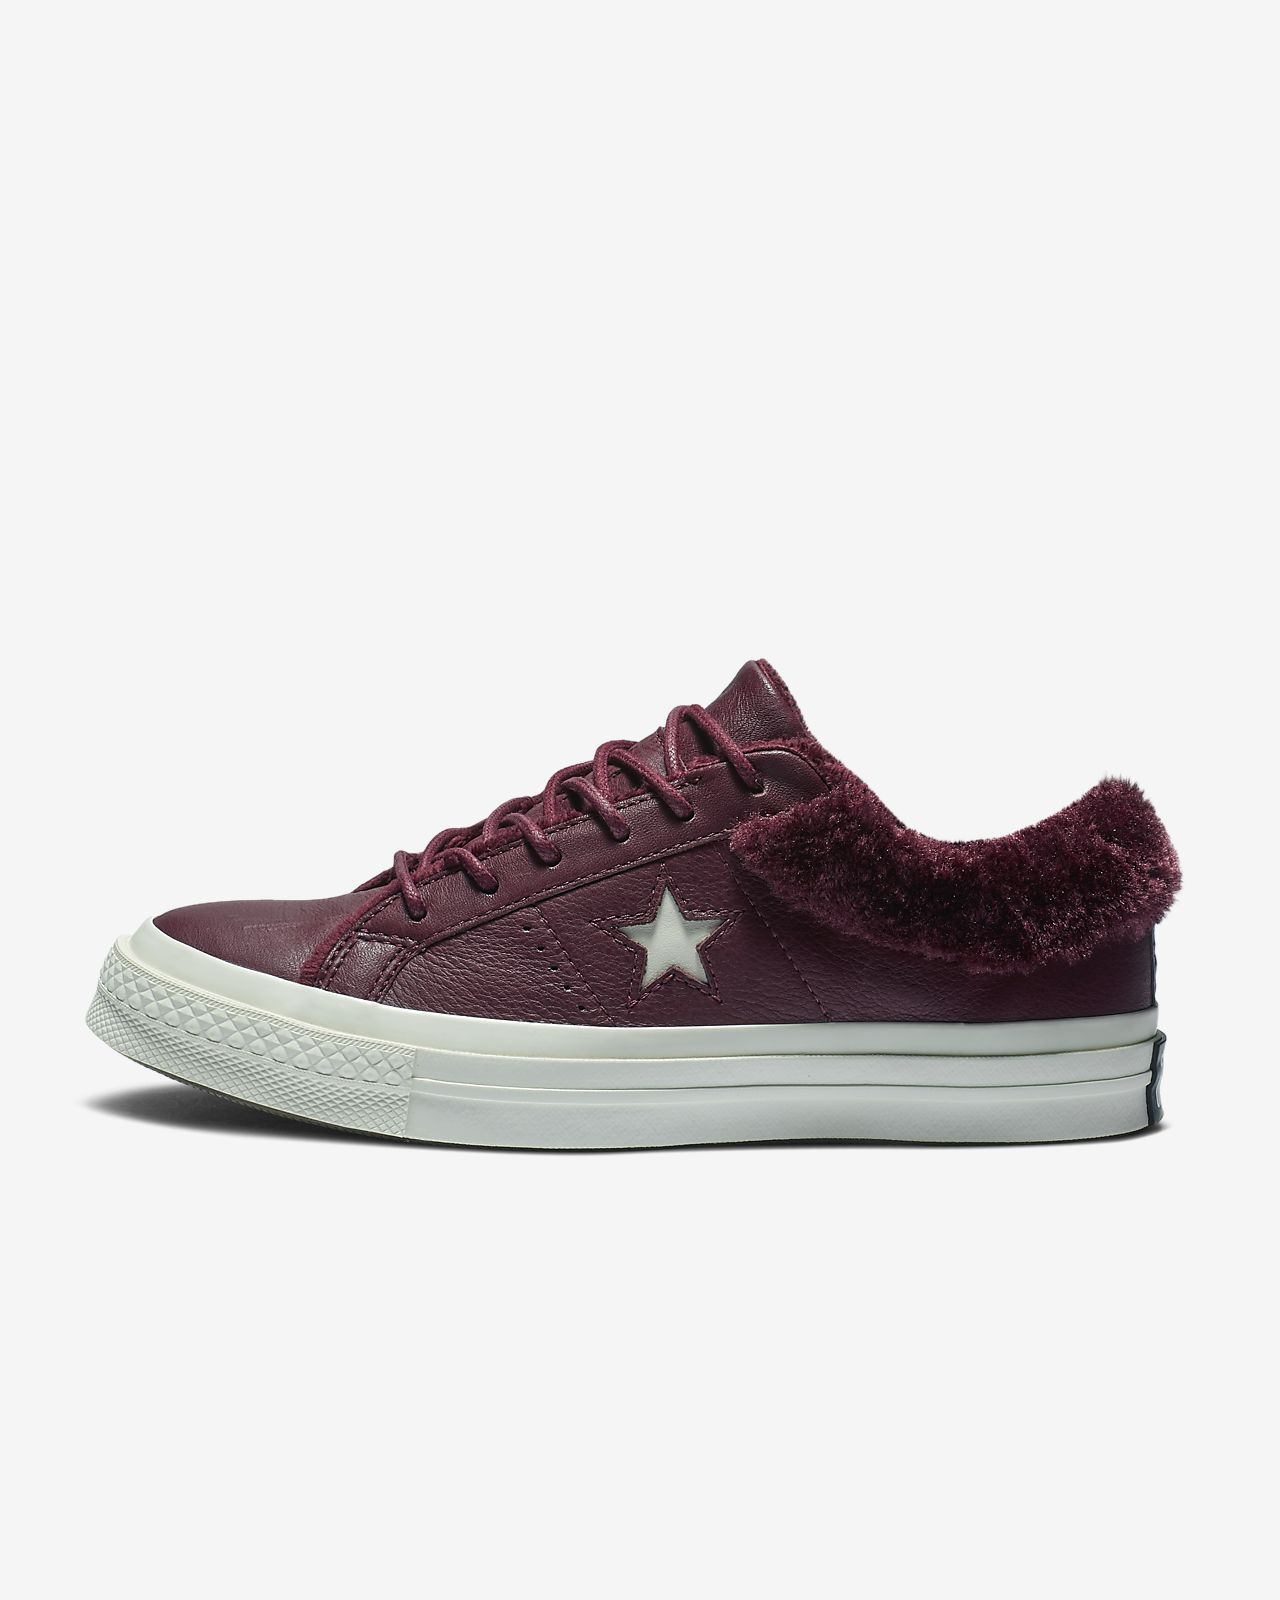 Converse One Star Street Warmer Leather Low Top  Women's Boot